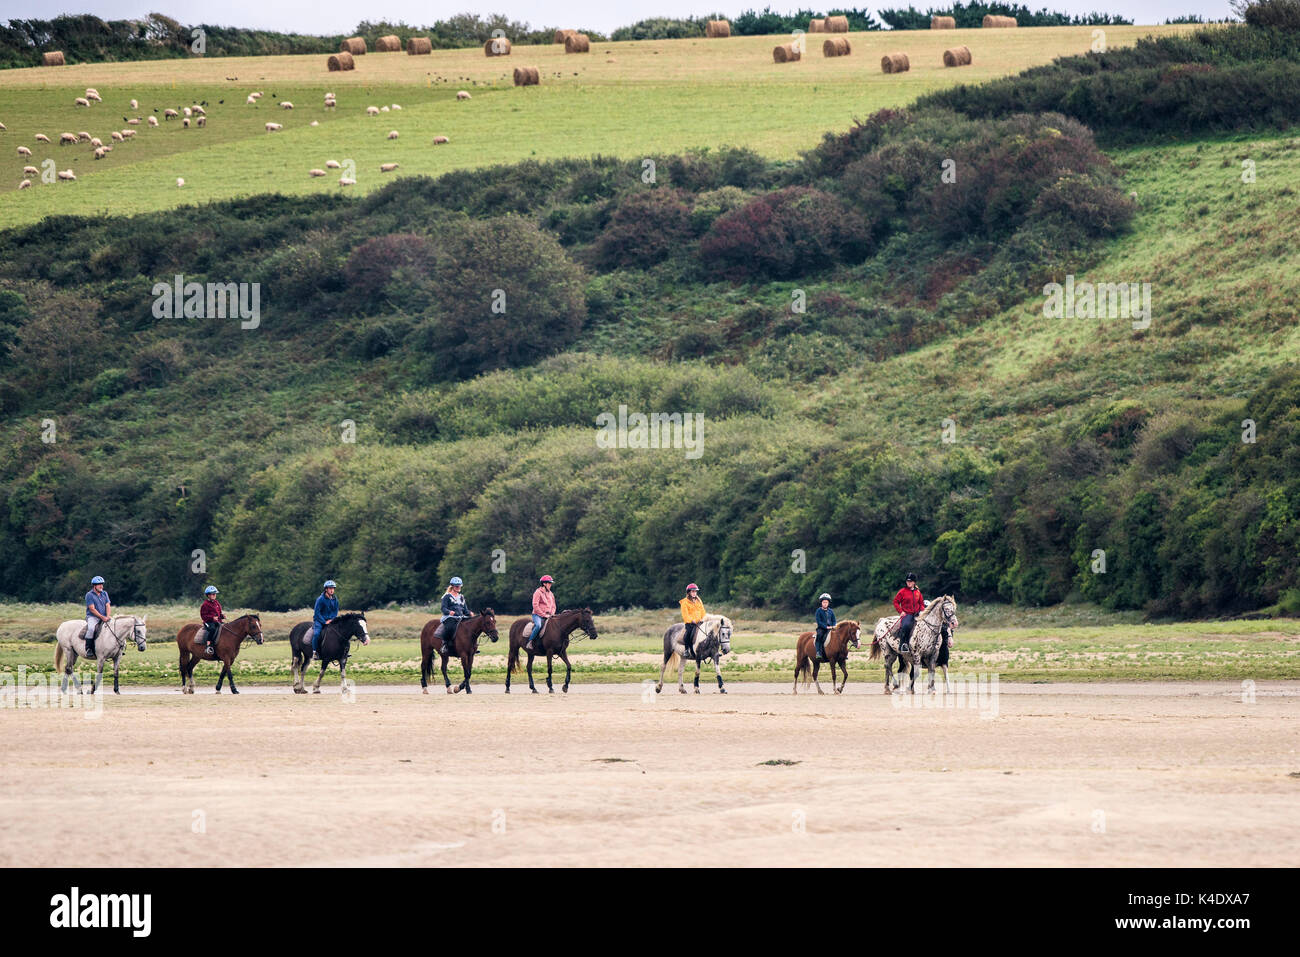 Gannel Estuary - pony trekking along the exposed river bed at low tide on the Gannel River in Newquay, Cornwall. - Stock Image